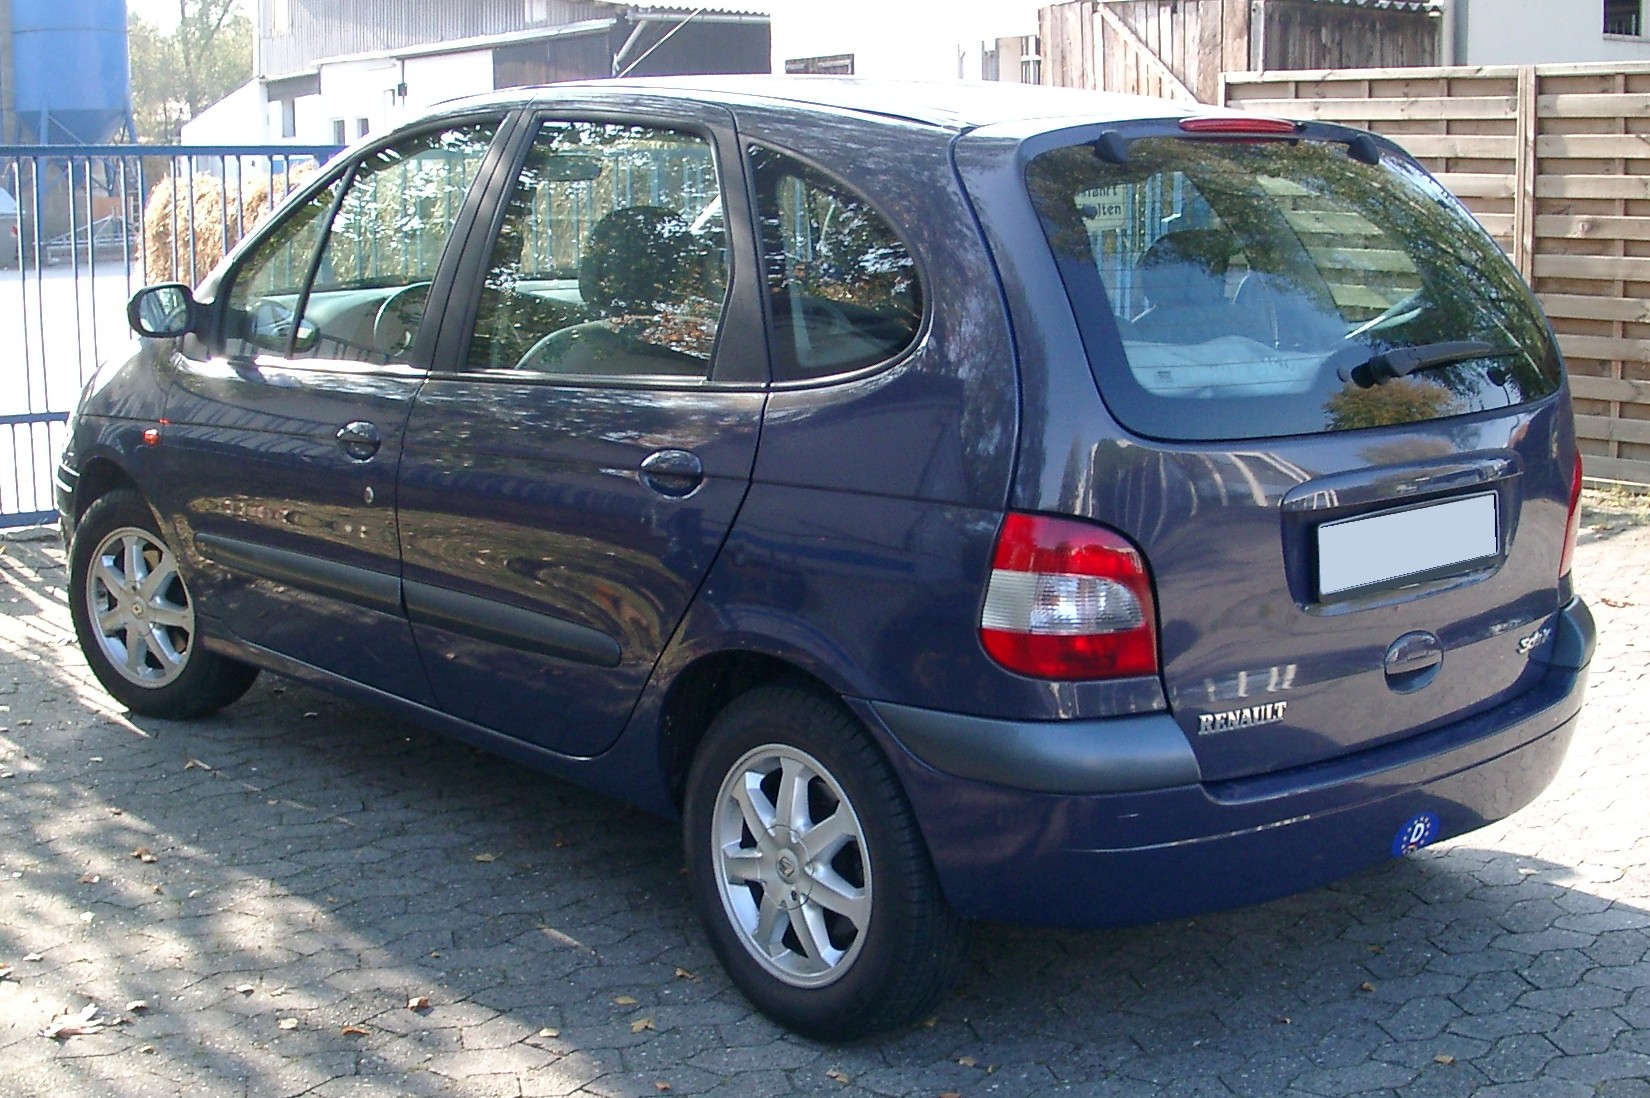 File:Renault Scenic rear 20071015.jpg - Wikimedia Commons